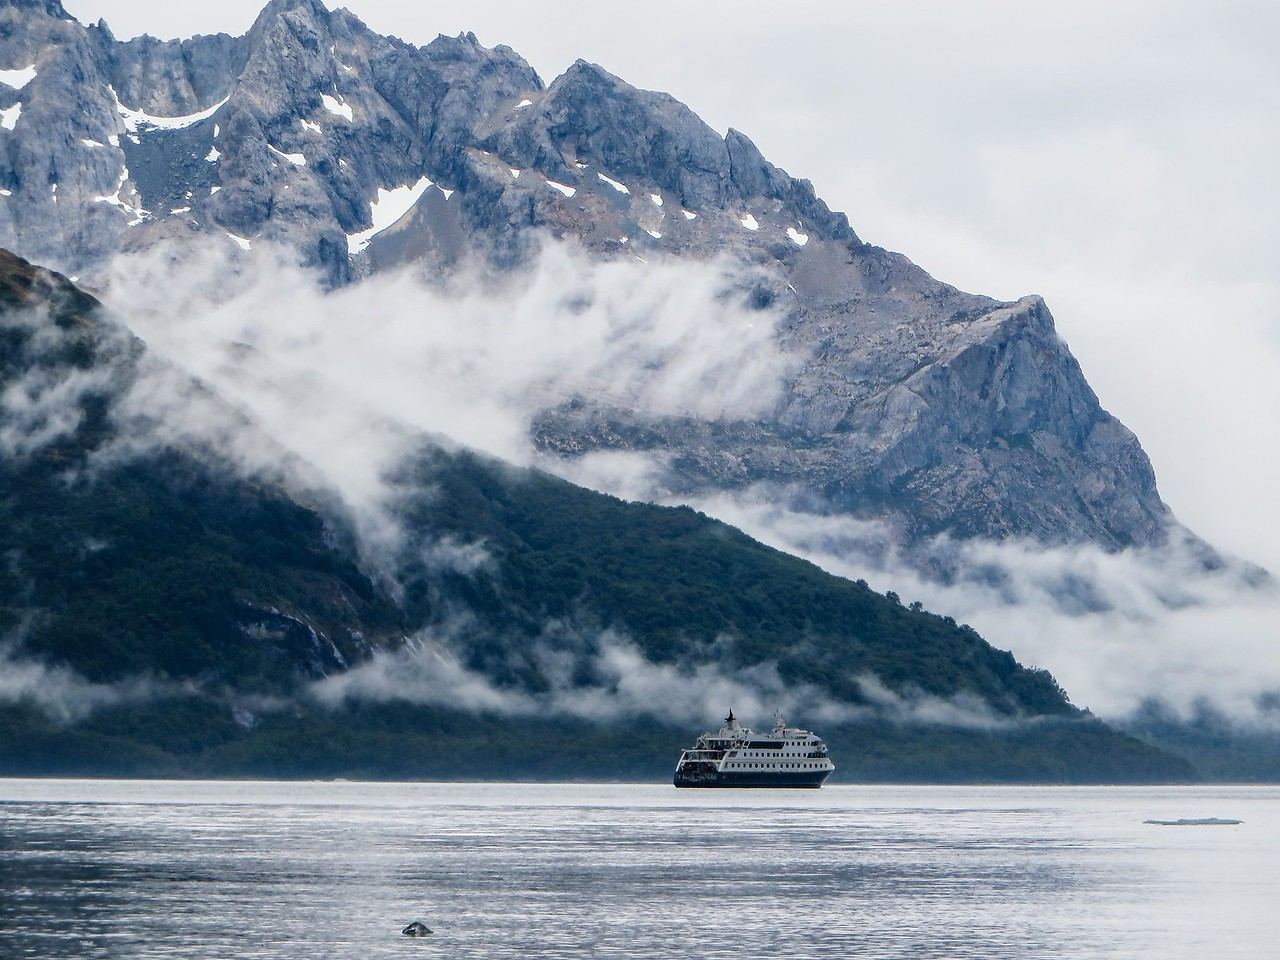 Our Ship, the Australis, anchored in Agostini Fjord